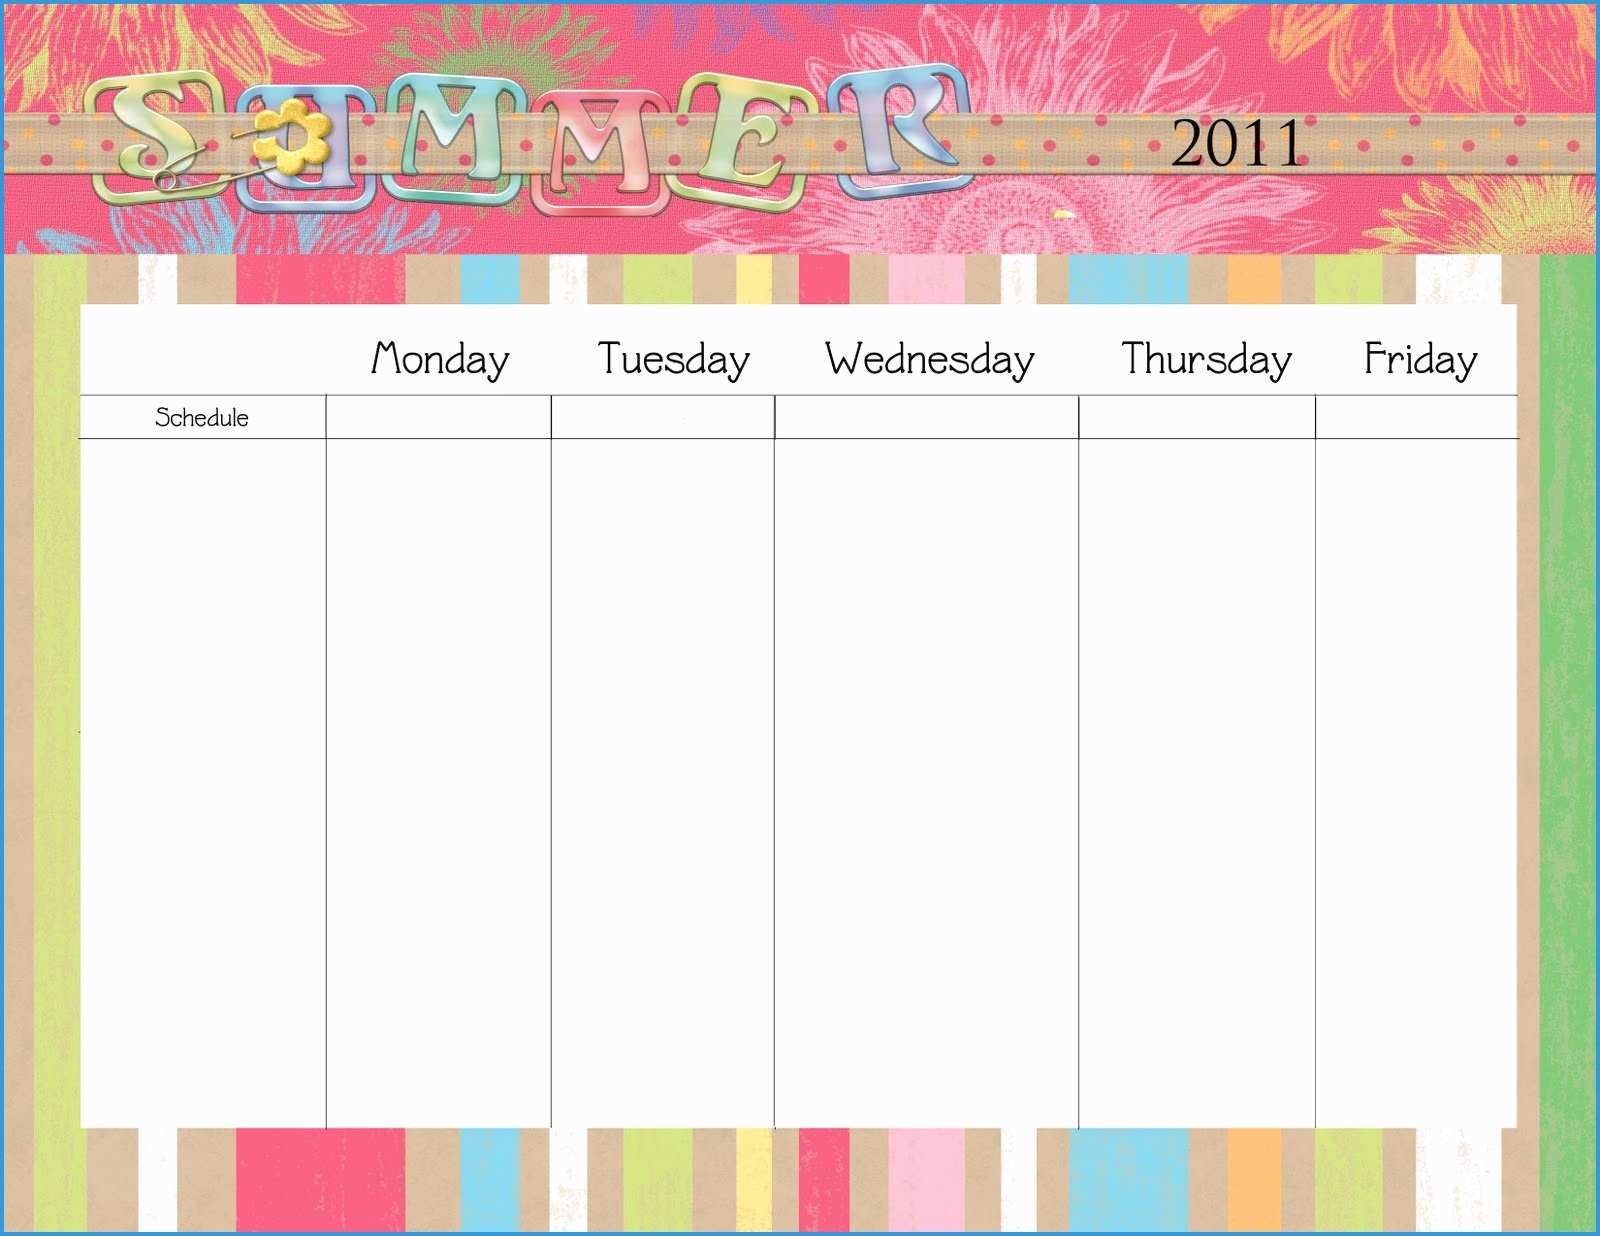 Free Monday Through Friday Calendar Template Marvelous Monday Thru in Template Monday Through Friday Calendar